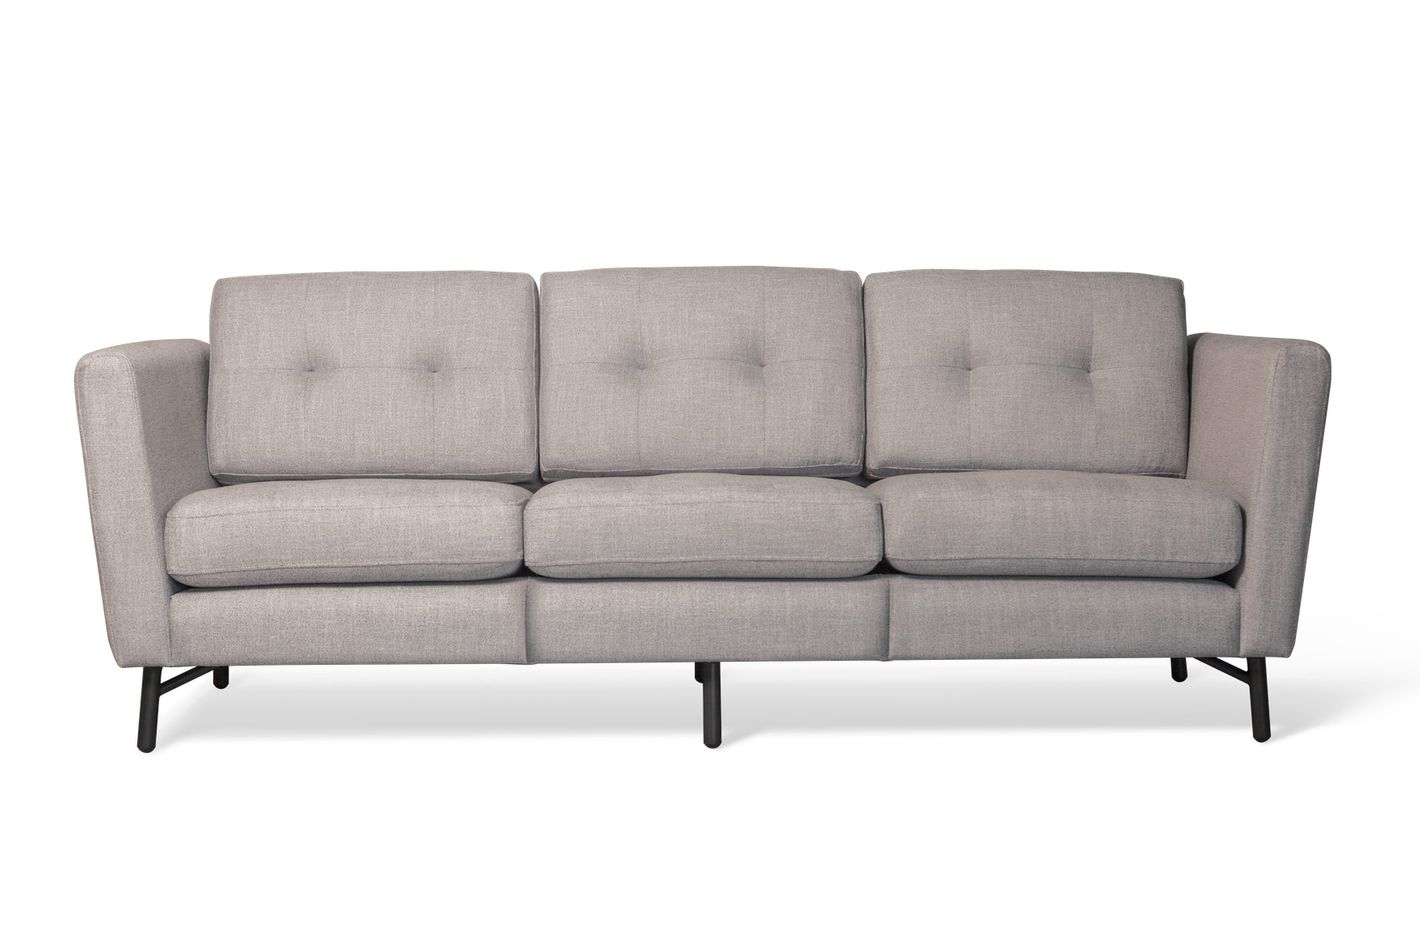 The Best Sofas Under Plus A Few Under